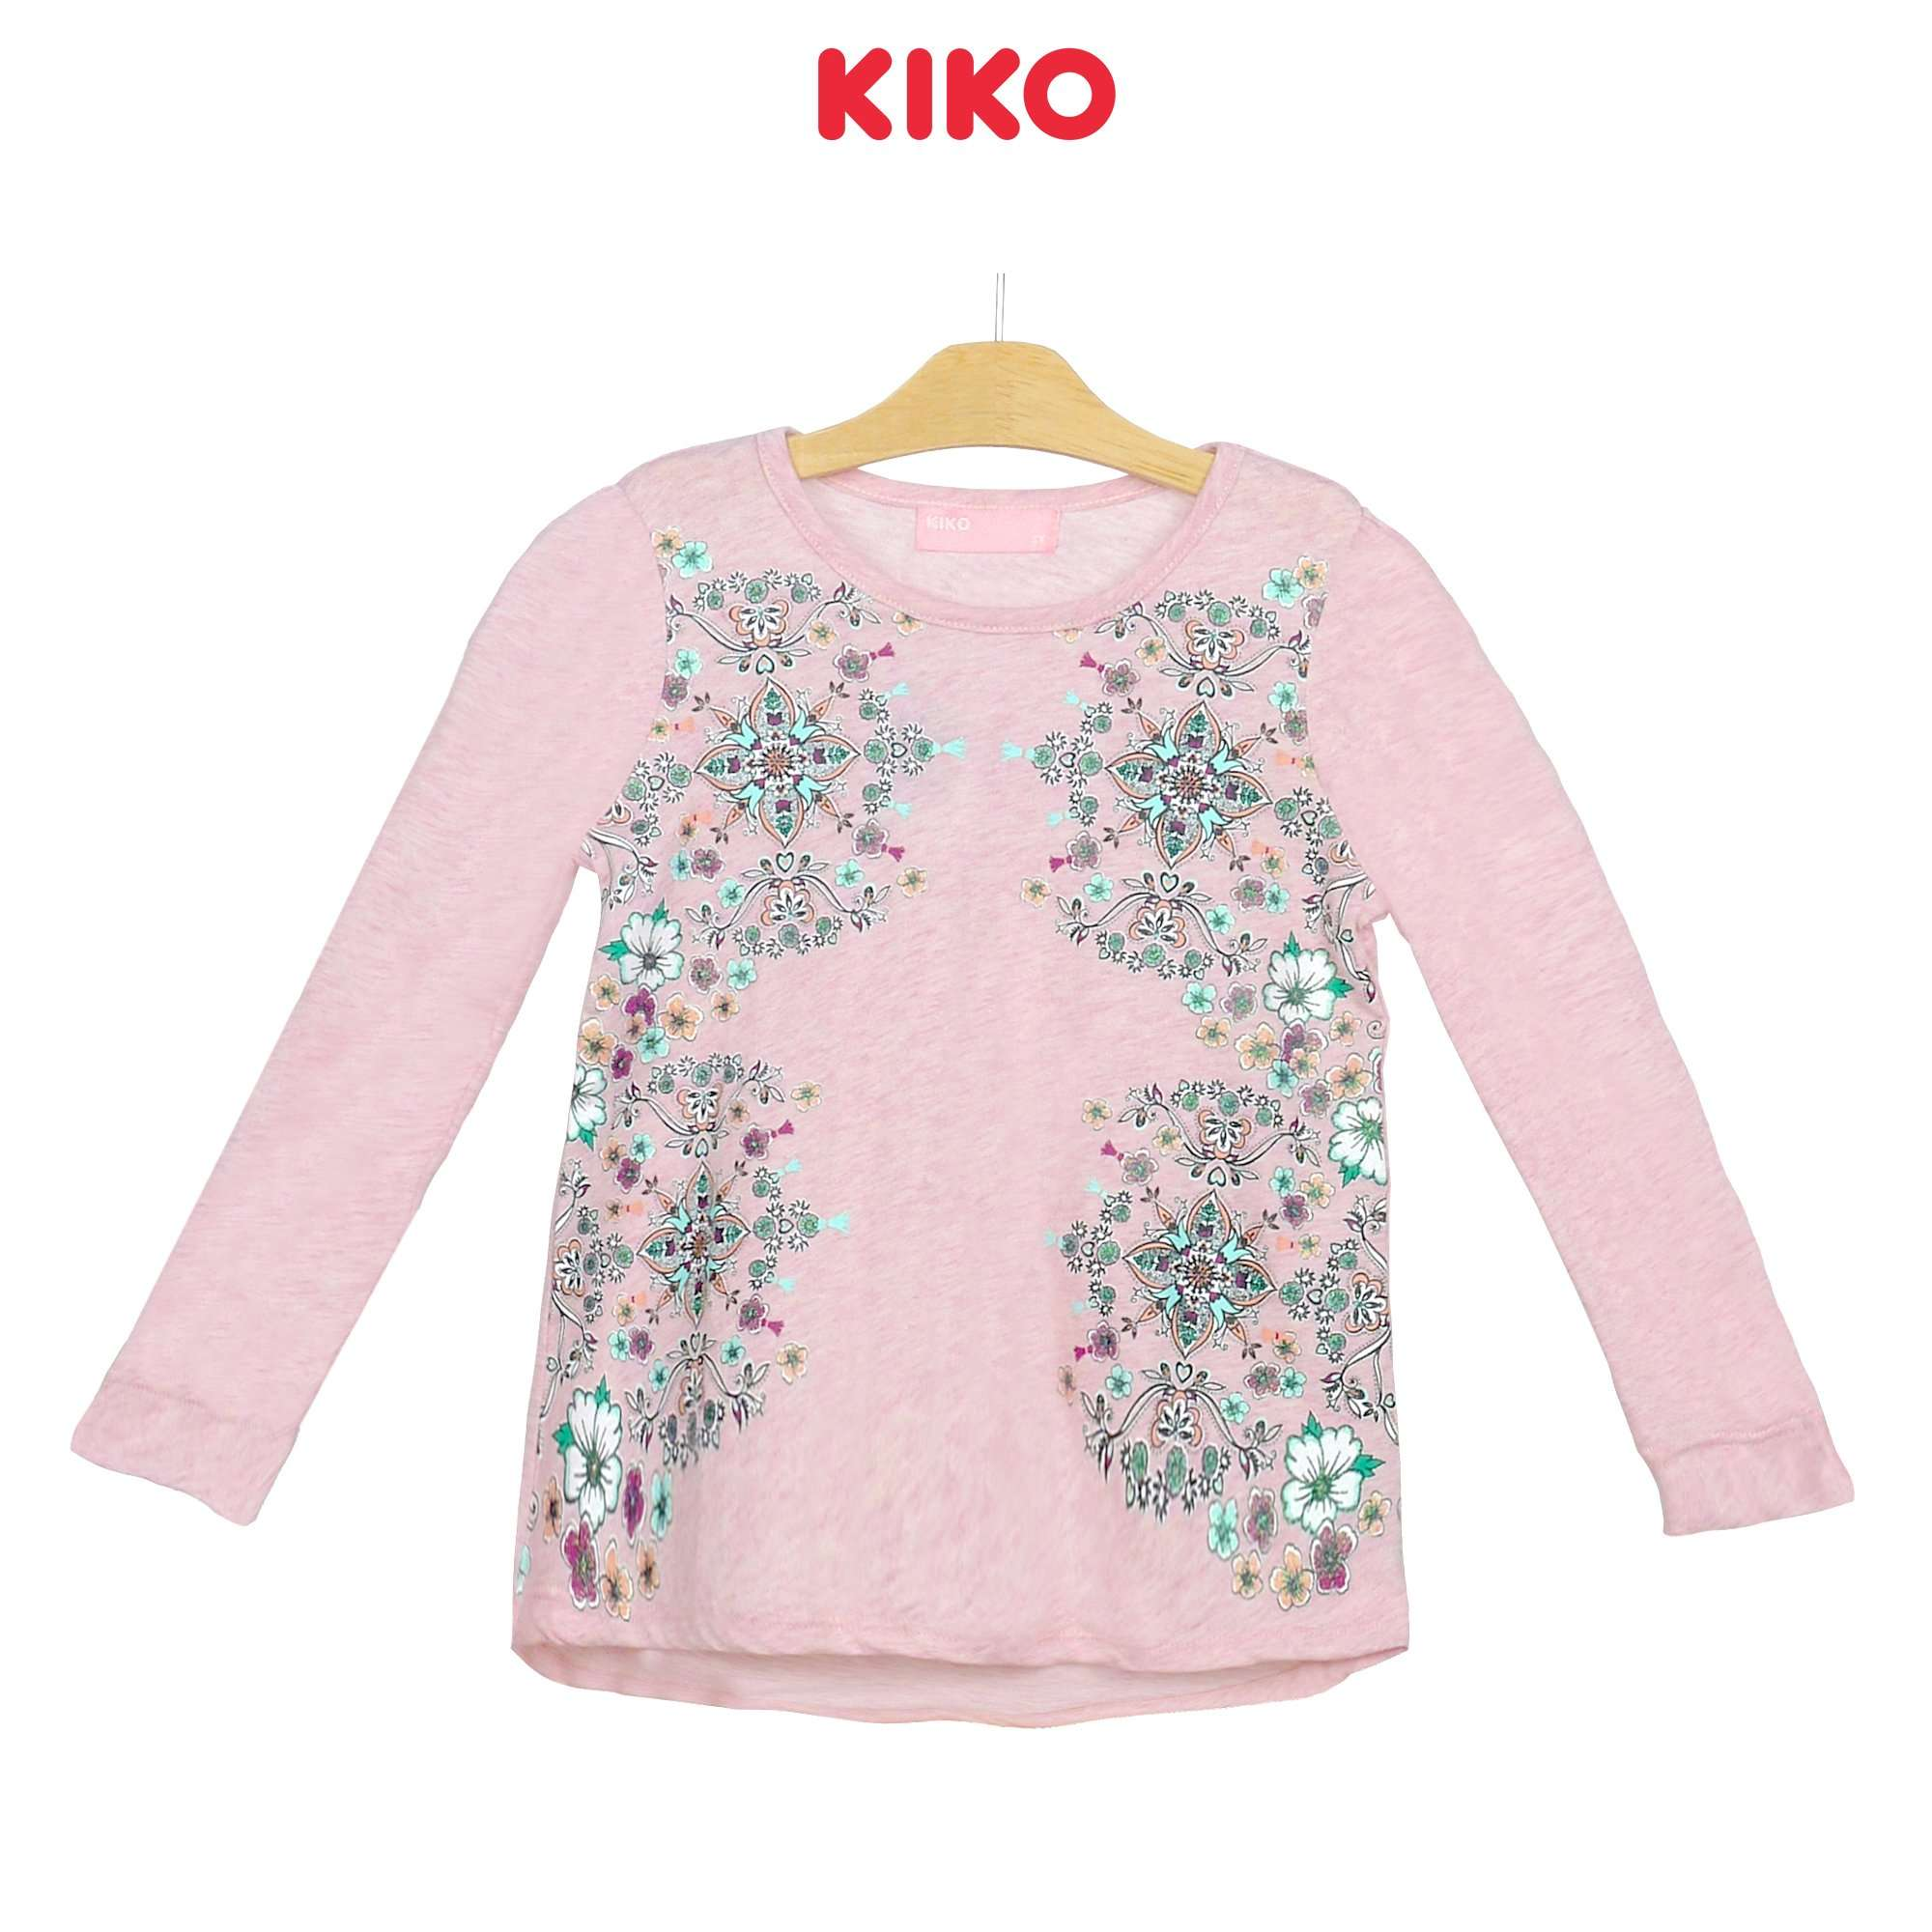 KIKO Girl Round Neck Long Sleeve Tee 135072-132 : Buy KIKO online at CMG.MY